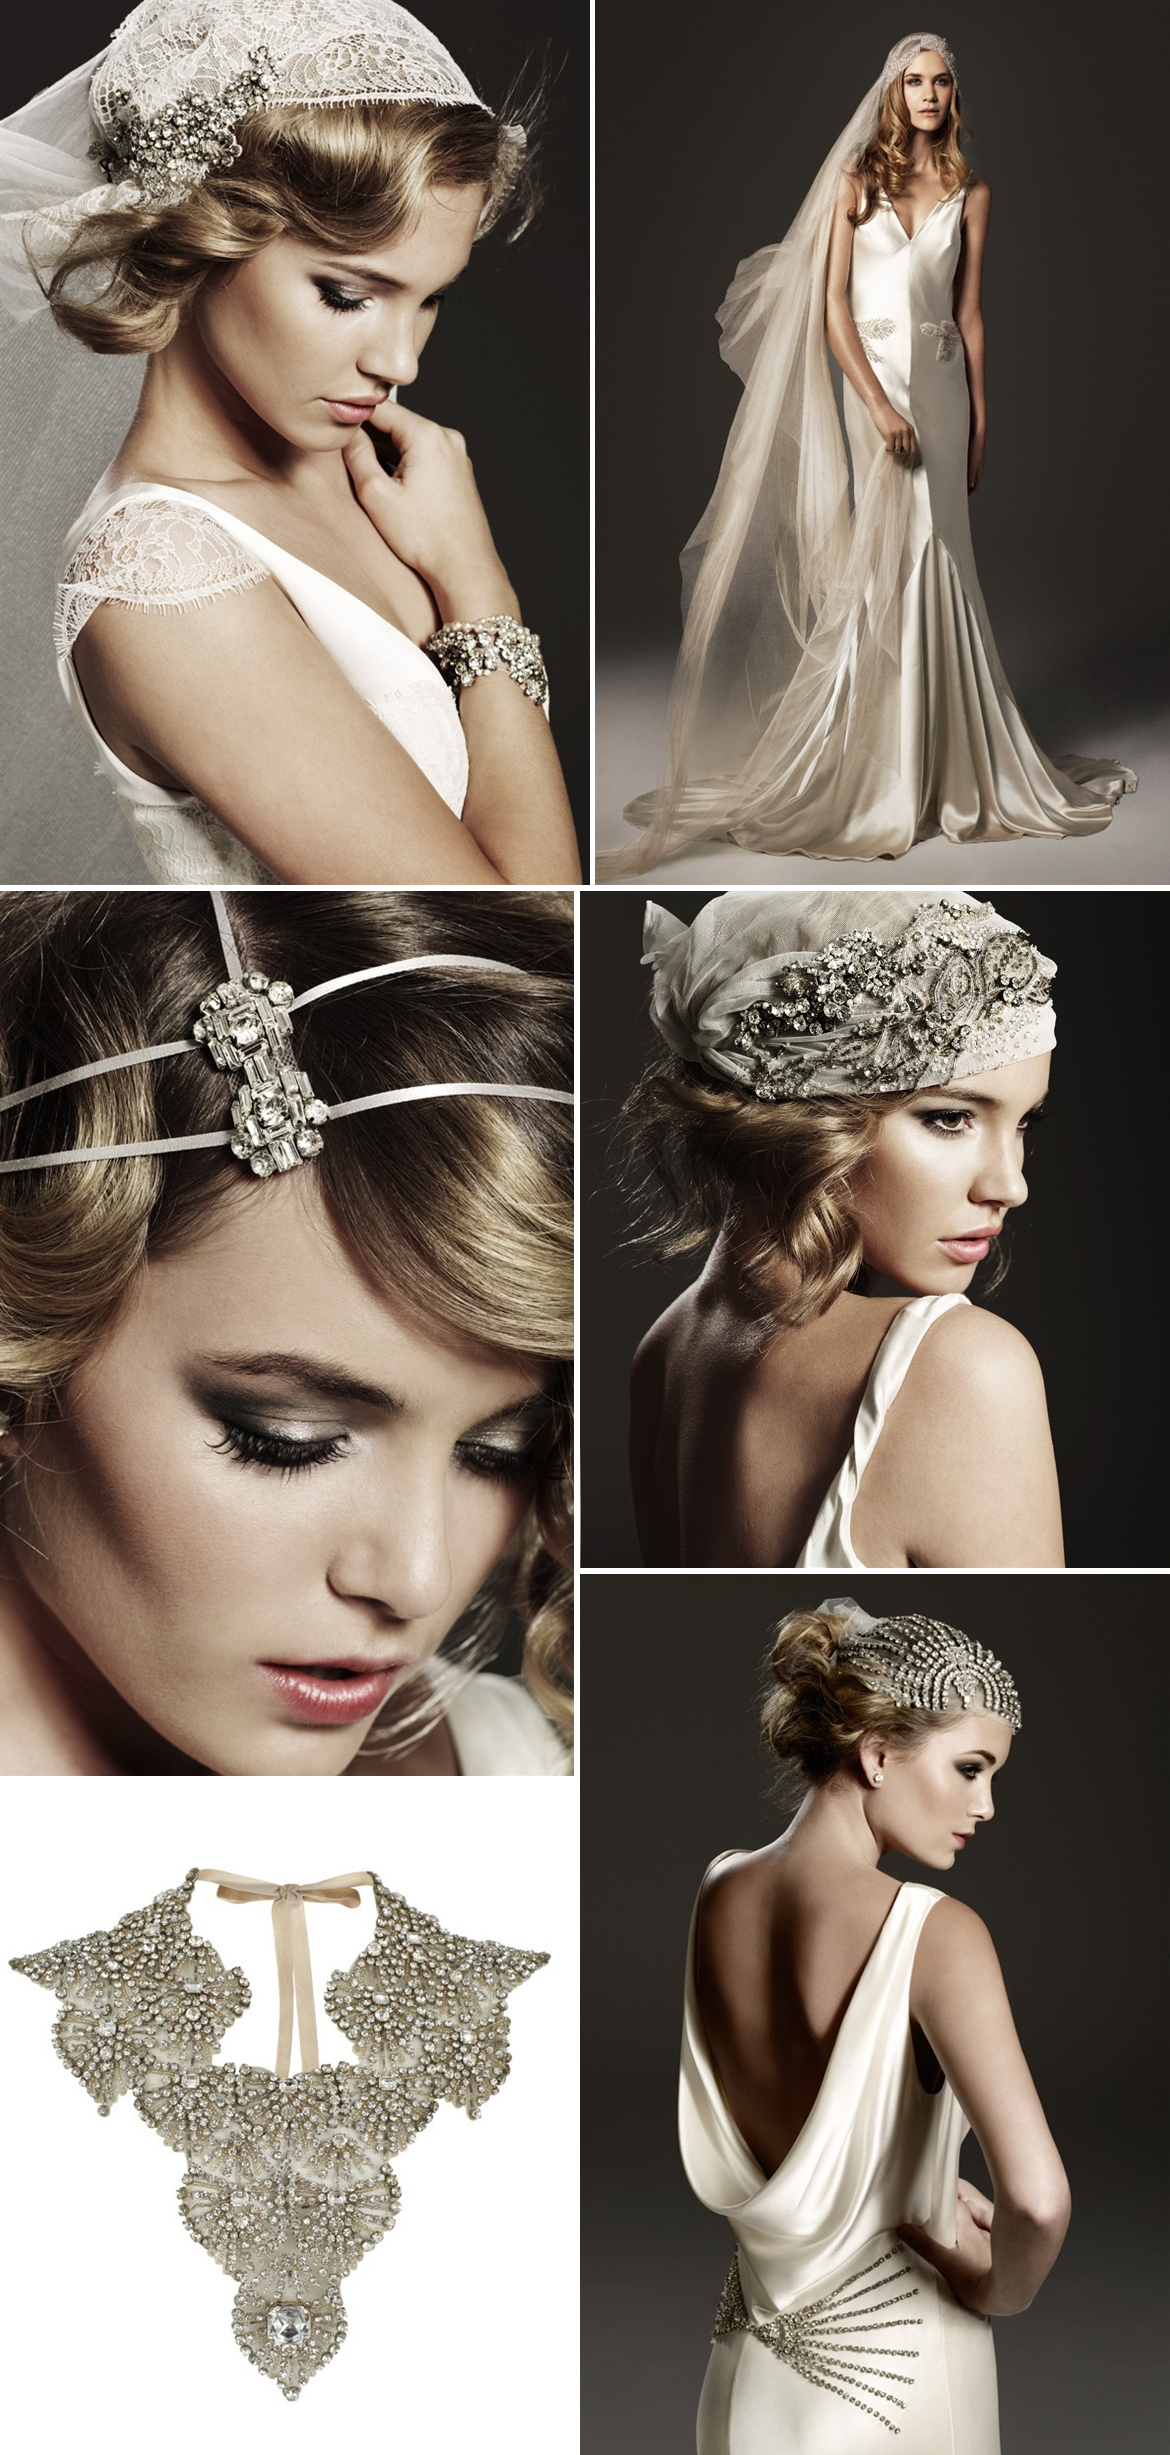 vintage inspired bridal hair accessories wedding jewelry | OneWed.com